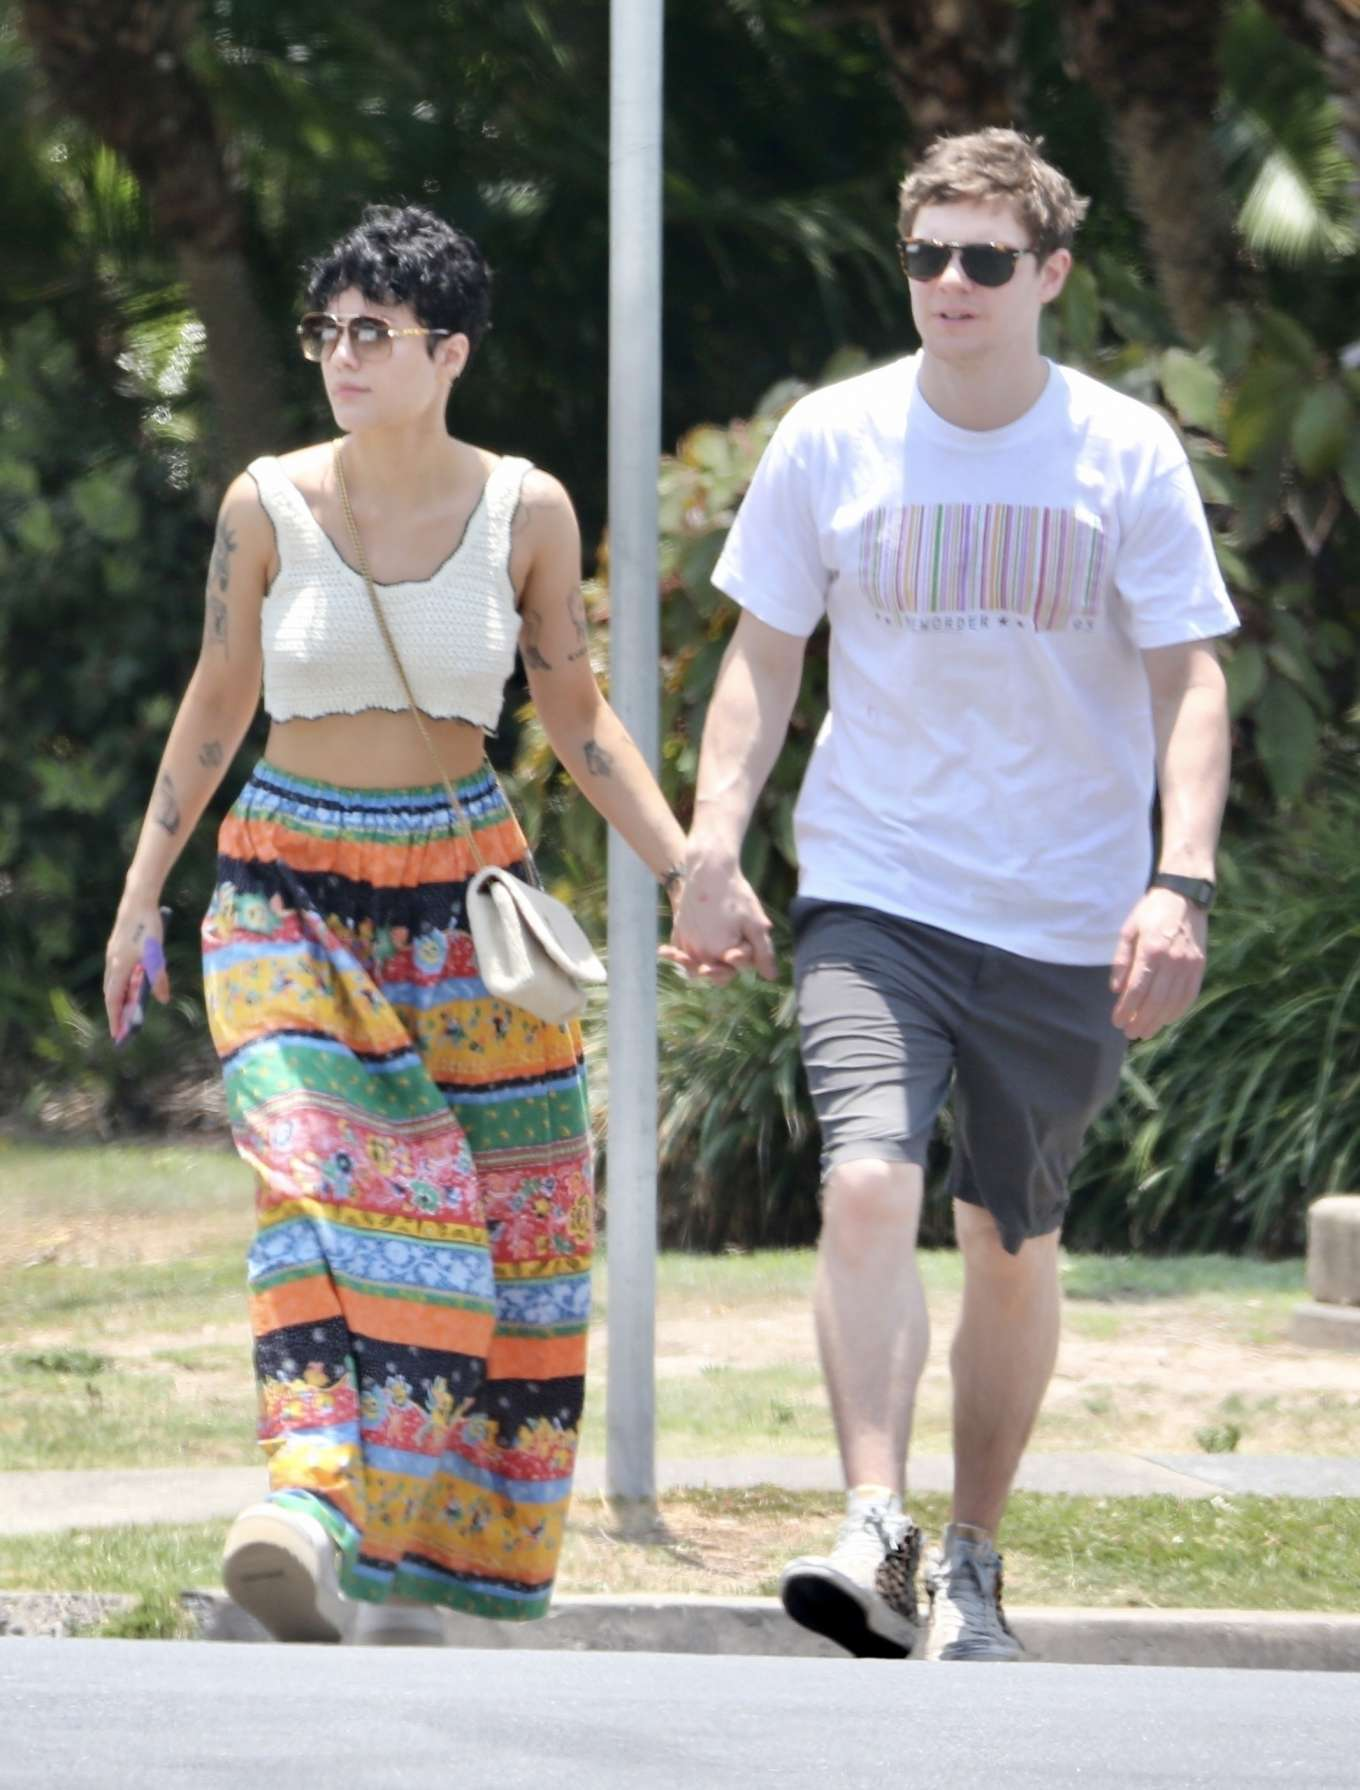 Halsey and Evan Peters - Getting lunch at Main Beach on the Gold Coast in Australia